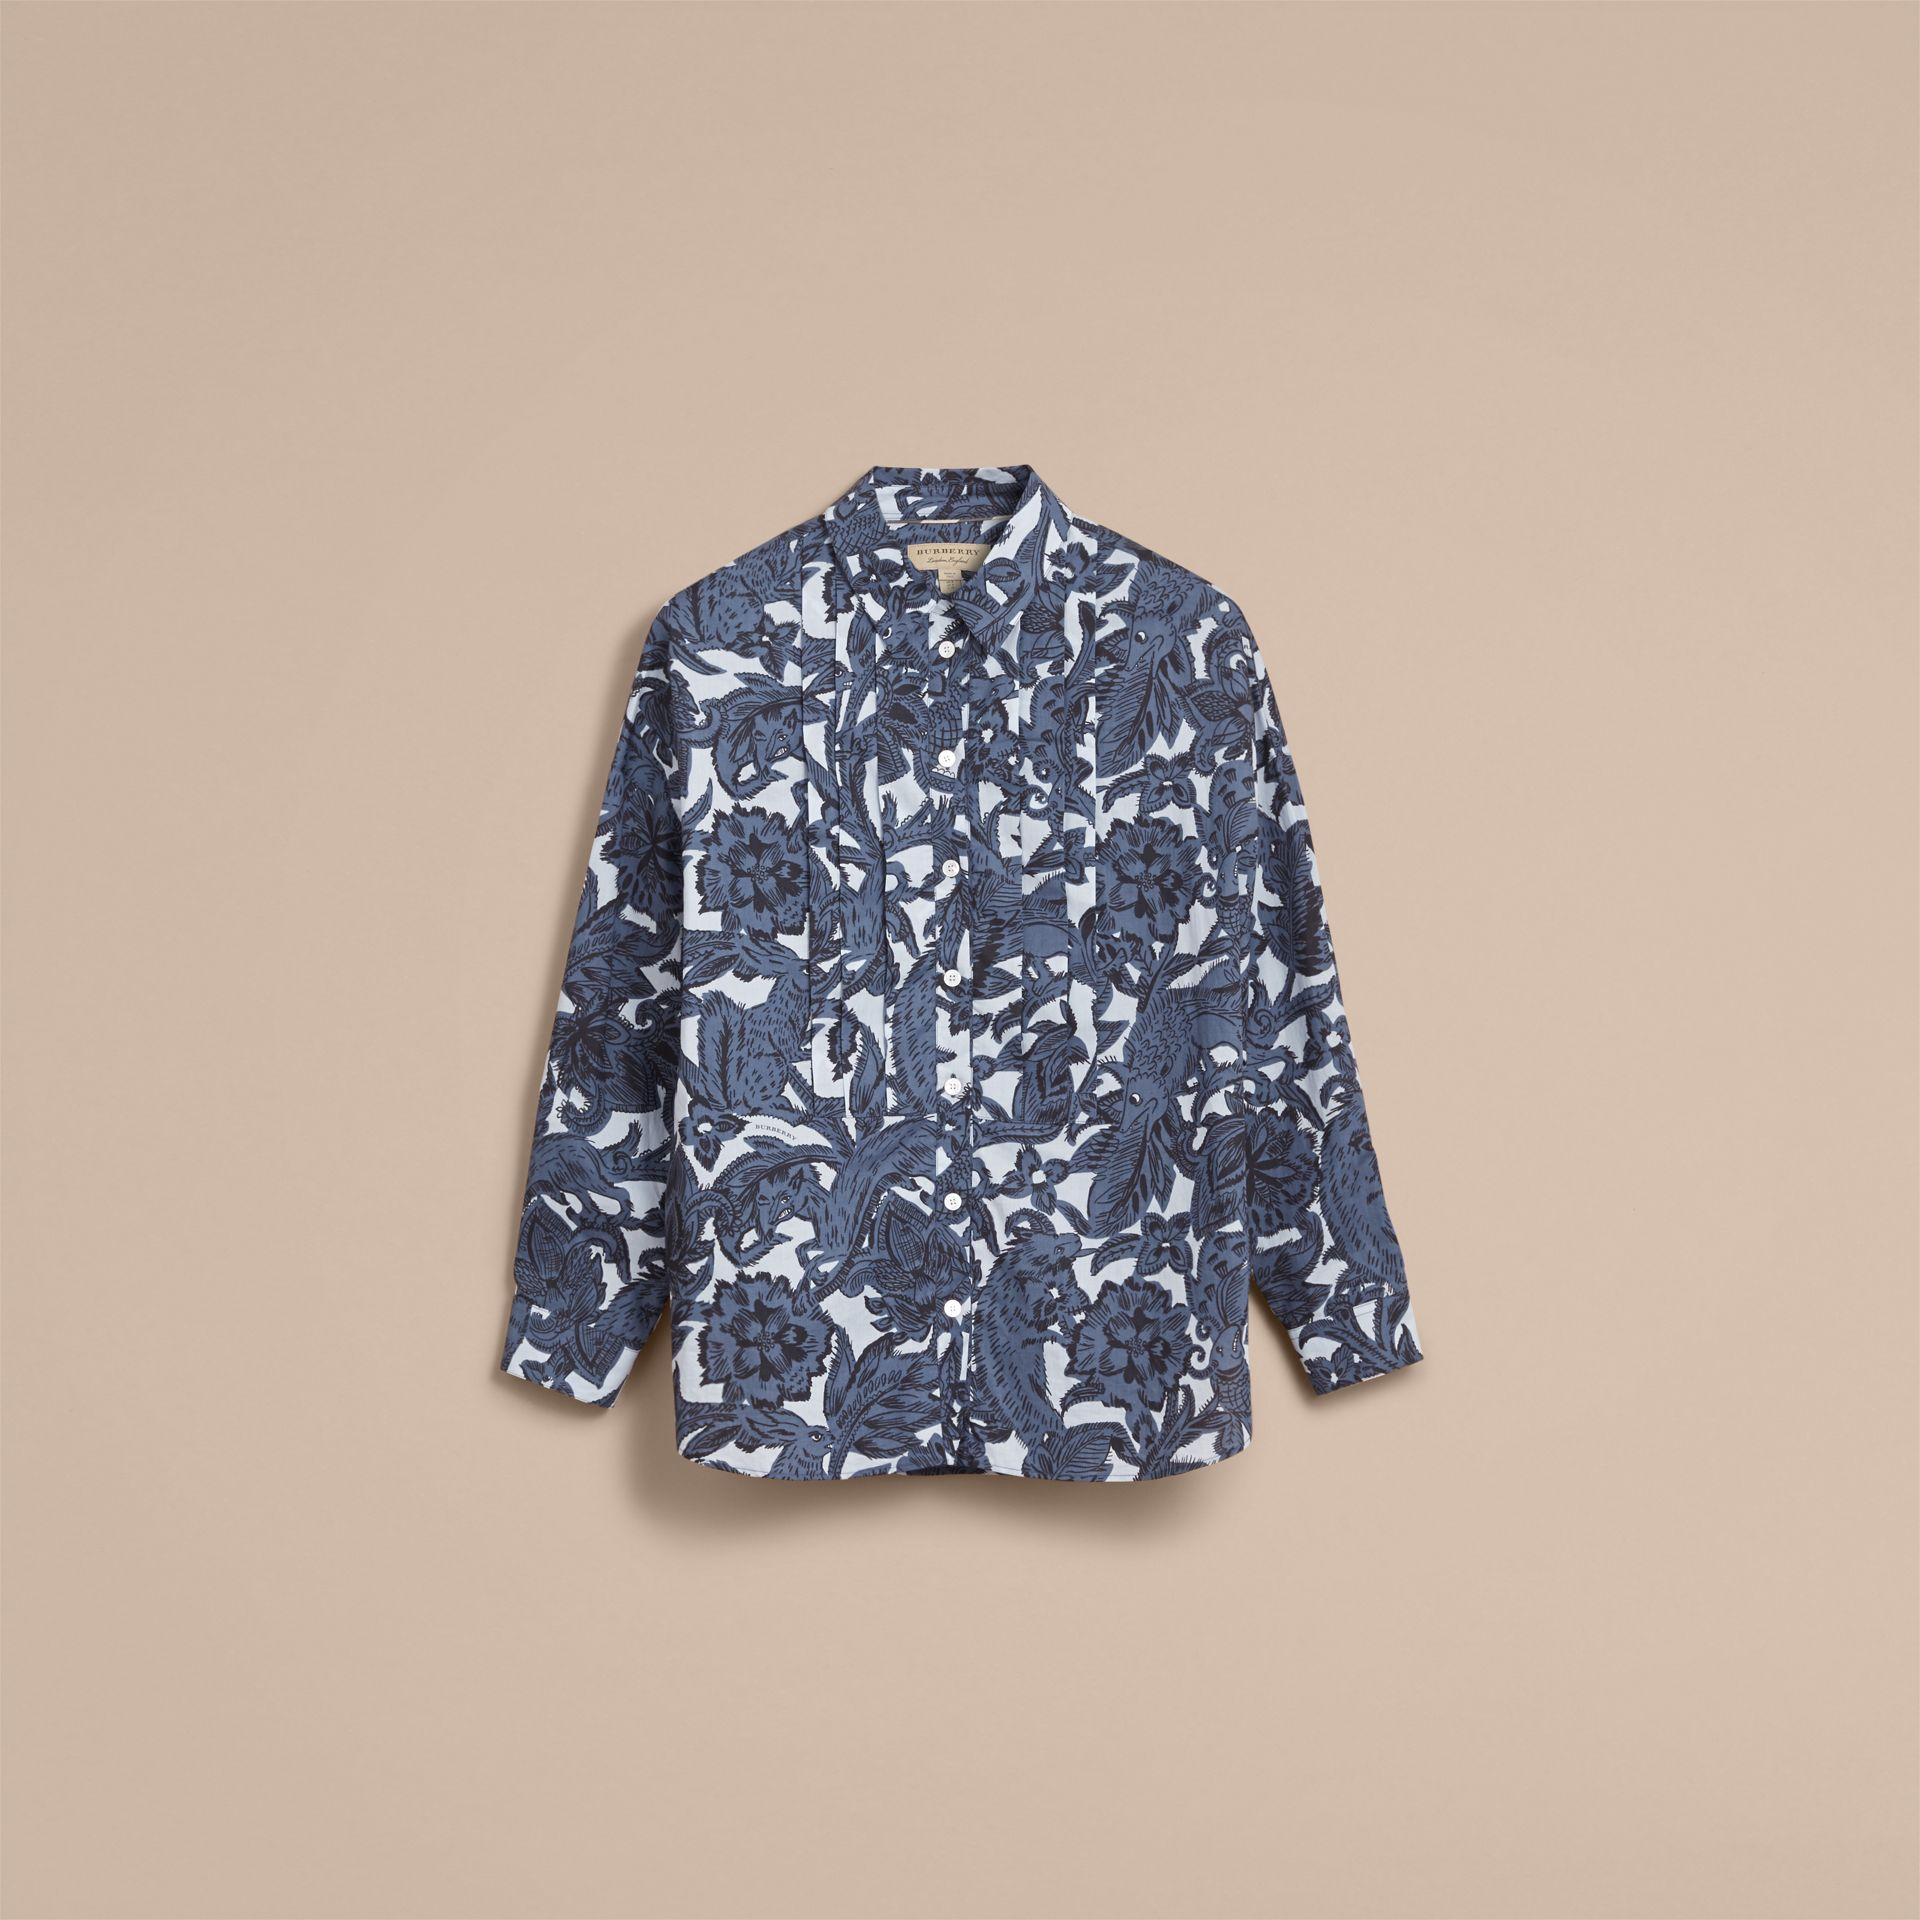 Pleated Bib Beasts Print Cotton Shirt in Stone Blue - Women | Burberry - gallery image 4